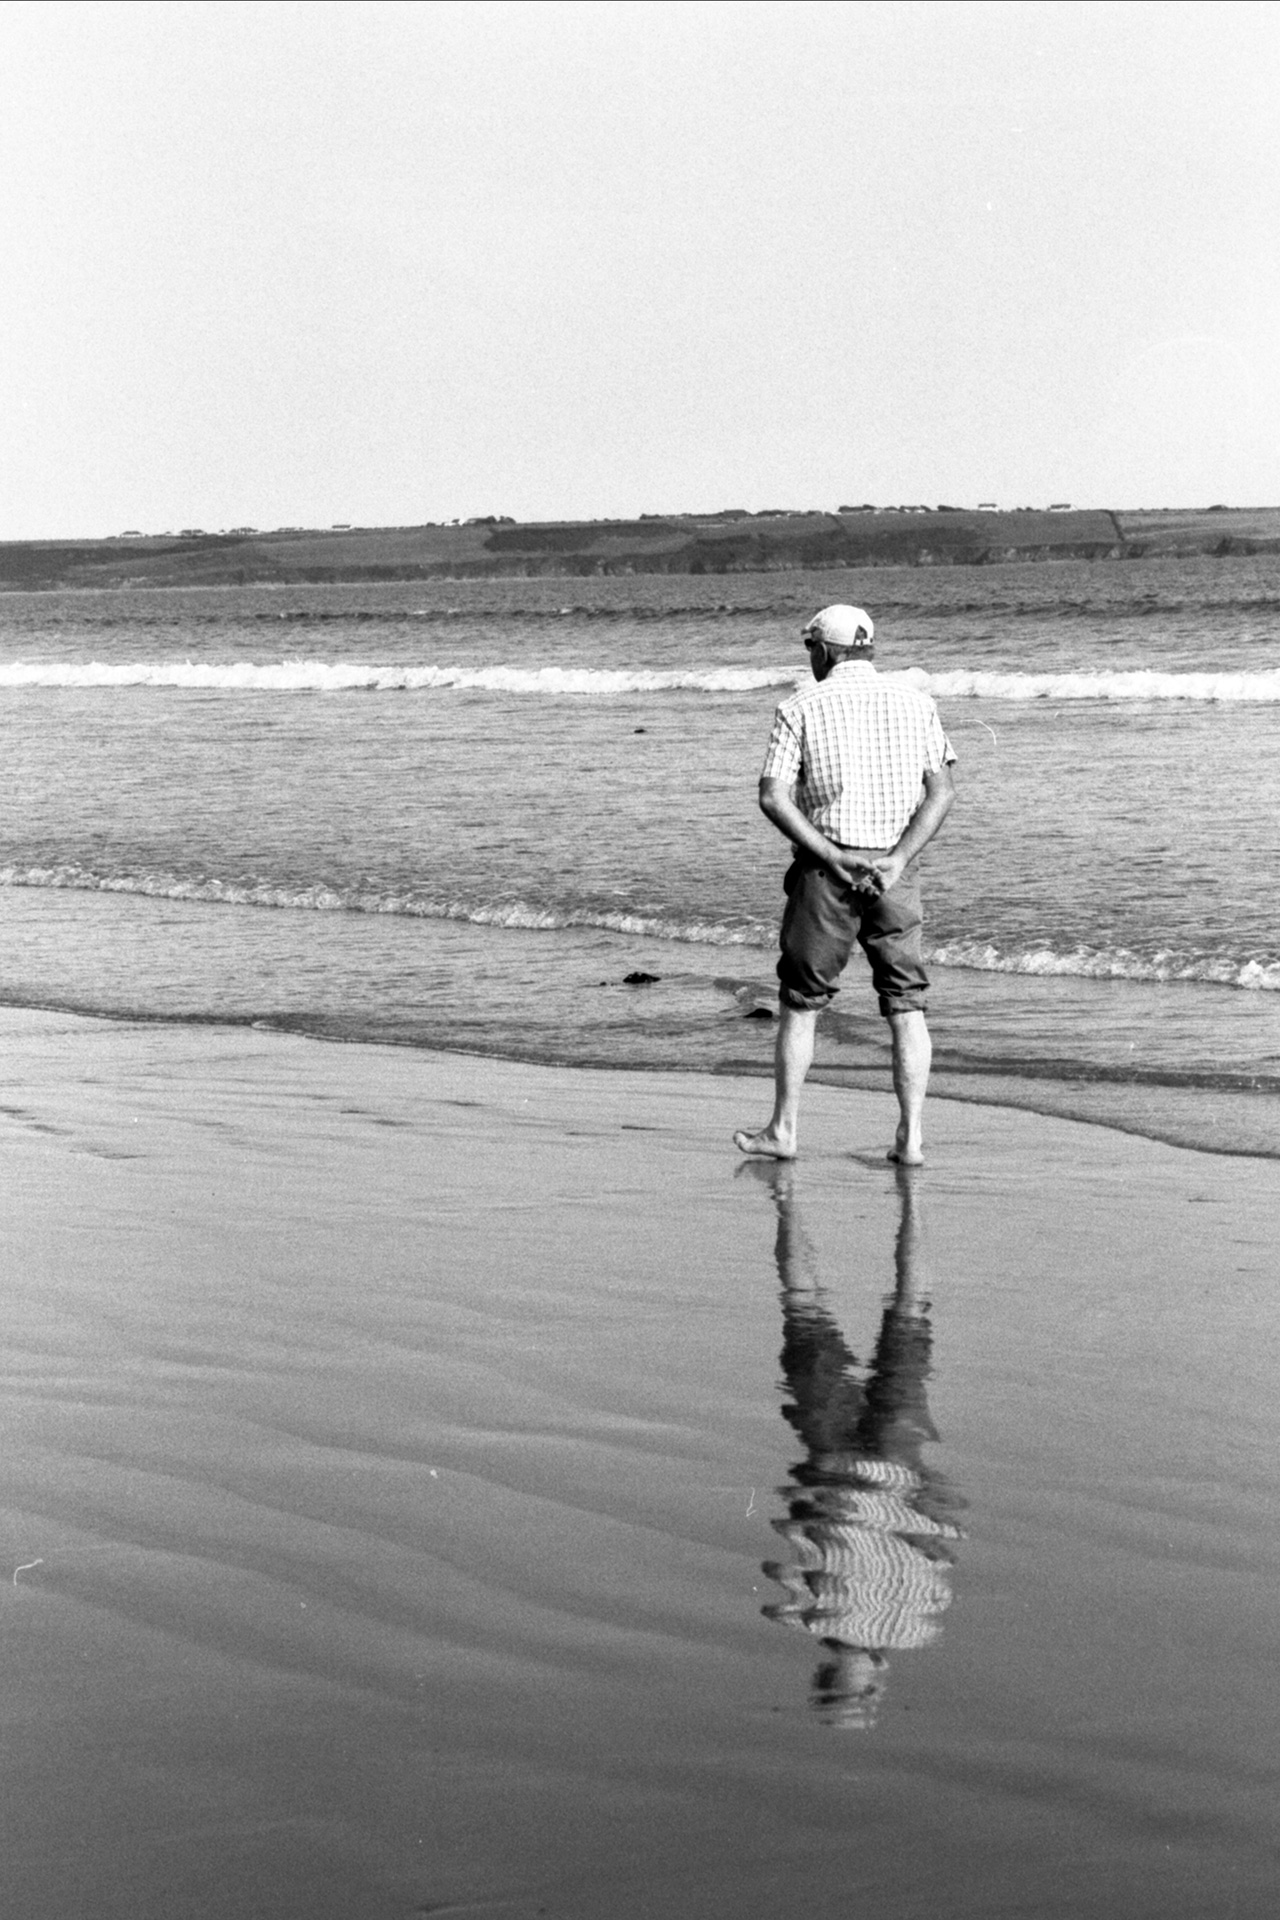 Fomapan 100 at 100 developed in Foma R09 1+50 for 9 min